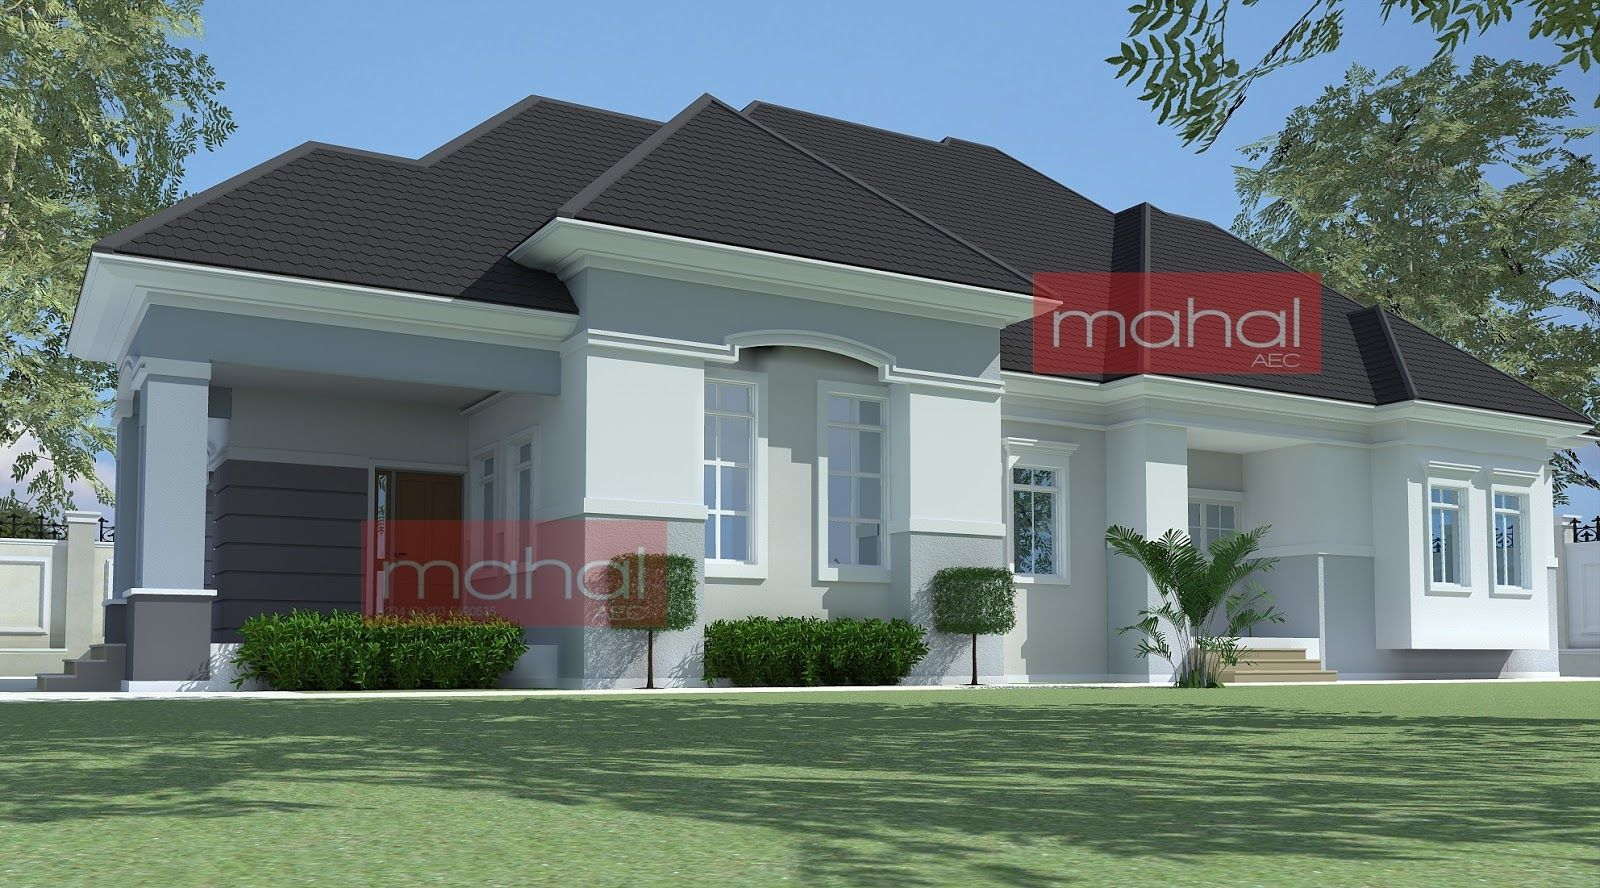 4 bedroom bungalow plan in nigeria 4 bedroom bungalow for Bungalow plans